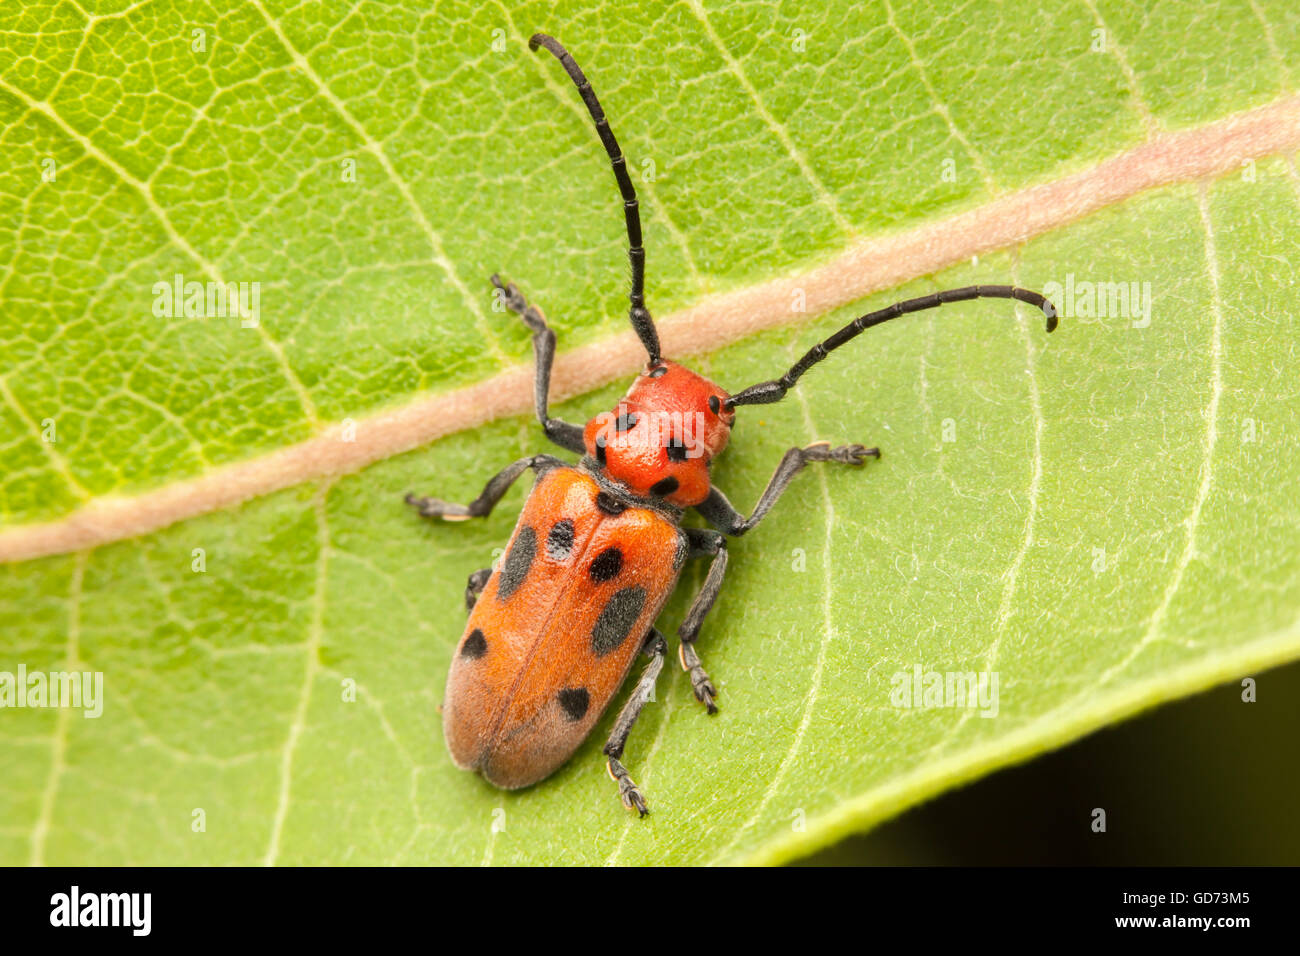 A Red Milkweed Beetle (Tetraopes tetrophthalmus) perches on a Common Milkweed plant leaf. - Stock Image